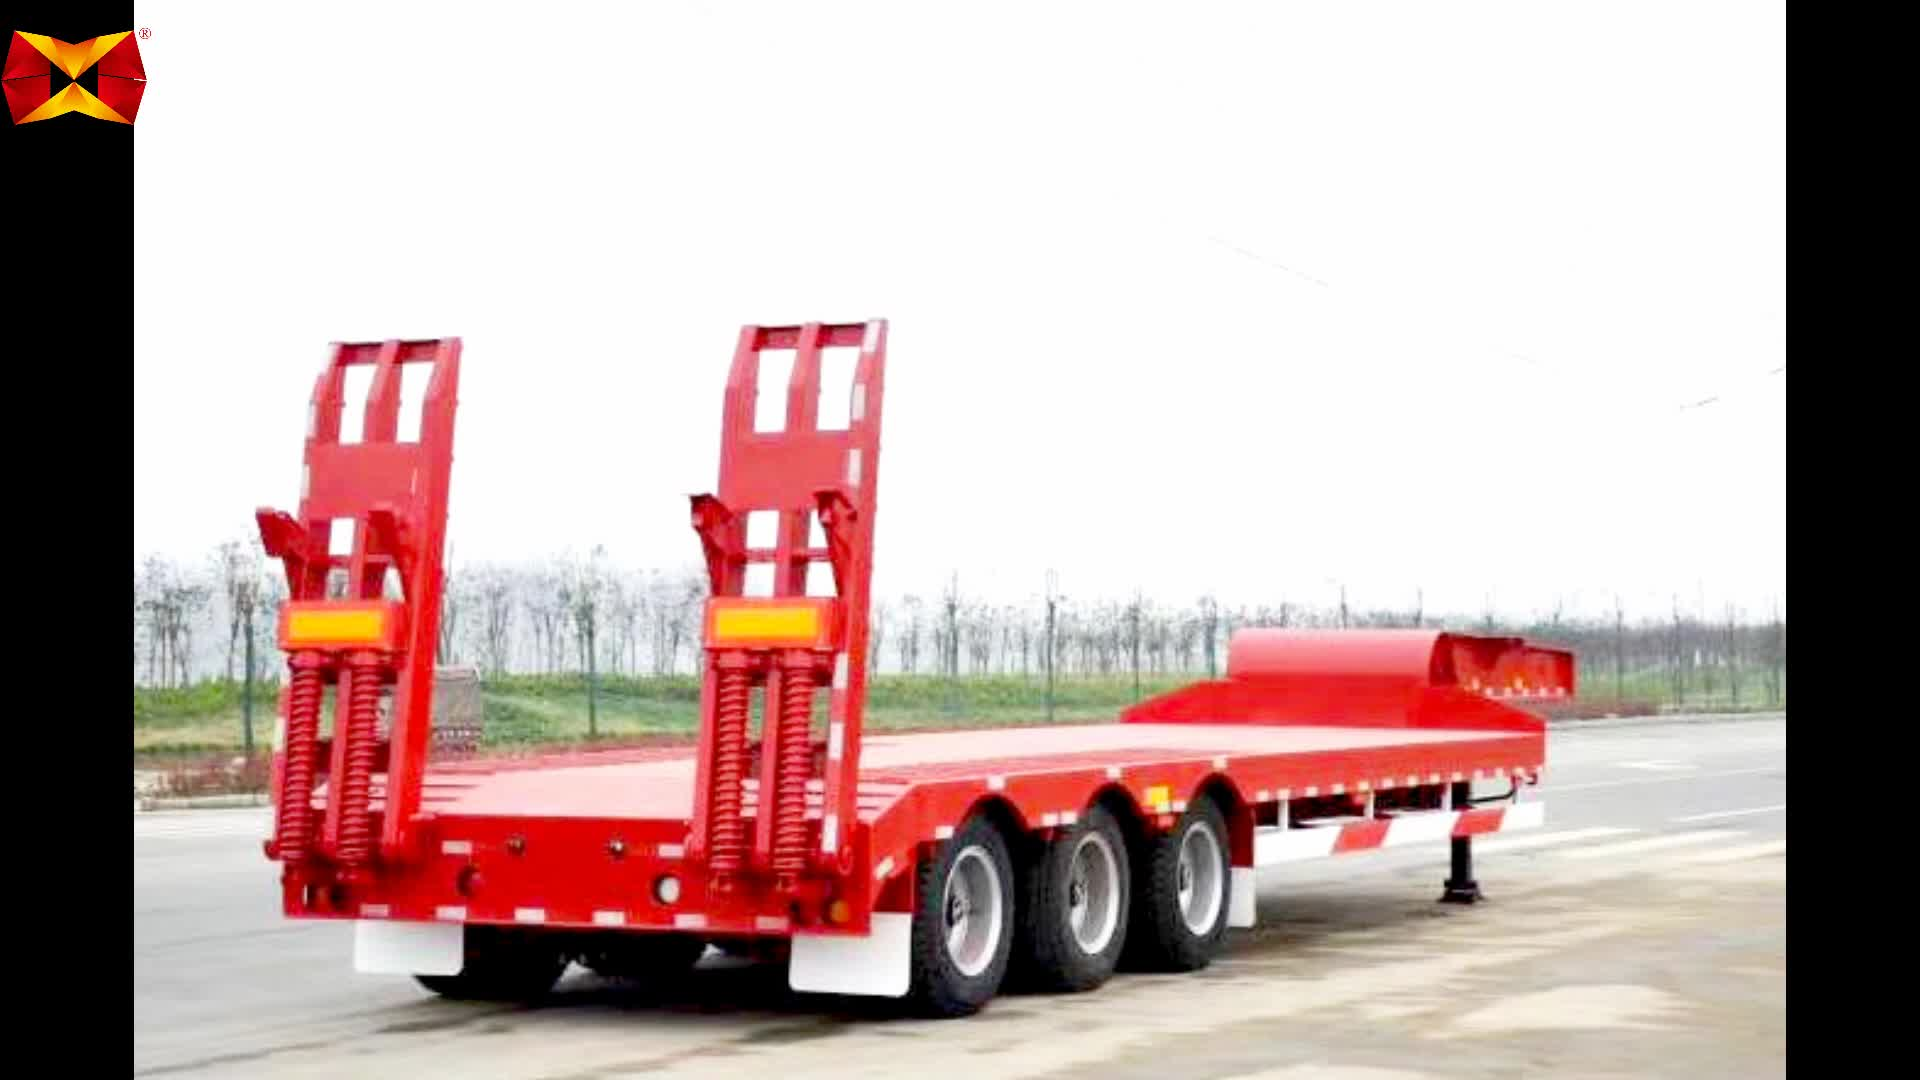 3 Axle 50 tonnes 60 ton Hydraulic Low Bed Semi Trailer Dimensions for sale